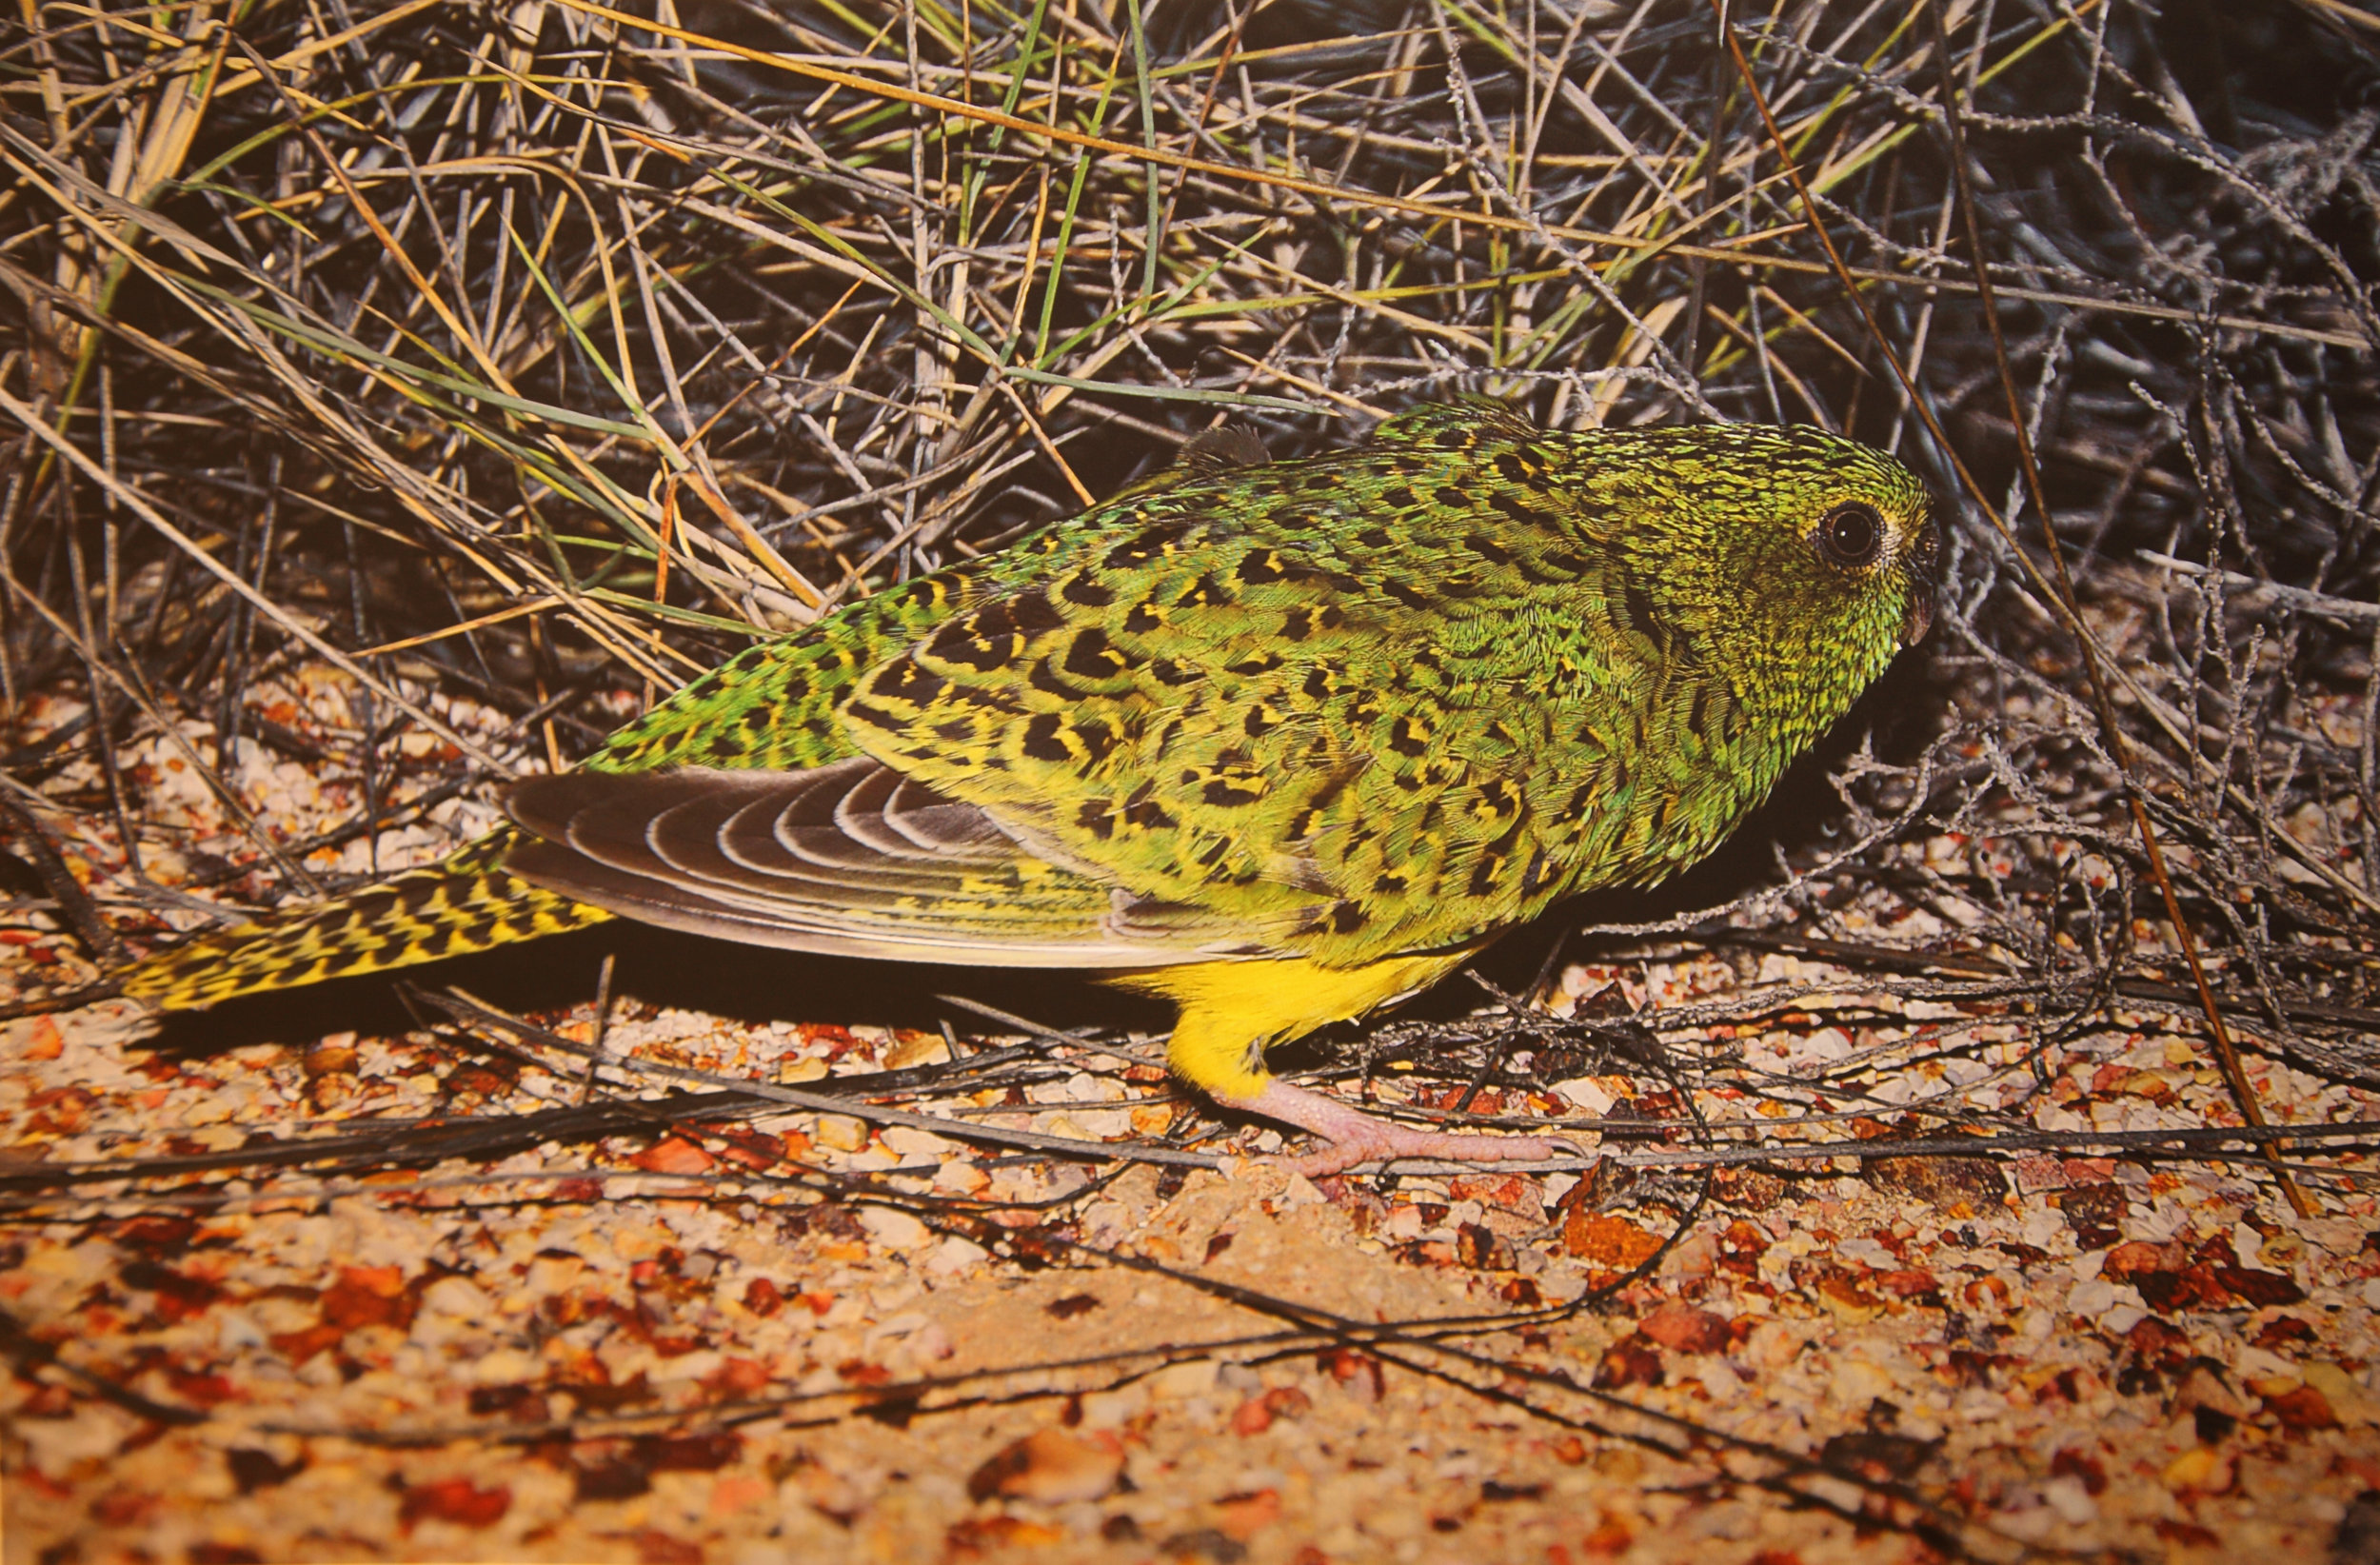 One of John Young's original Night Parrot pics from western QLD in 2013. Used with kind permission.